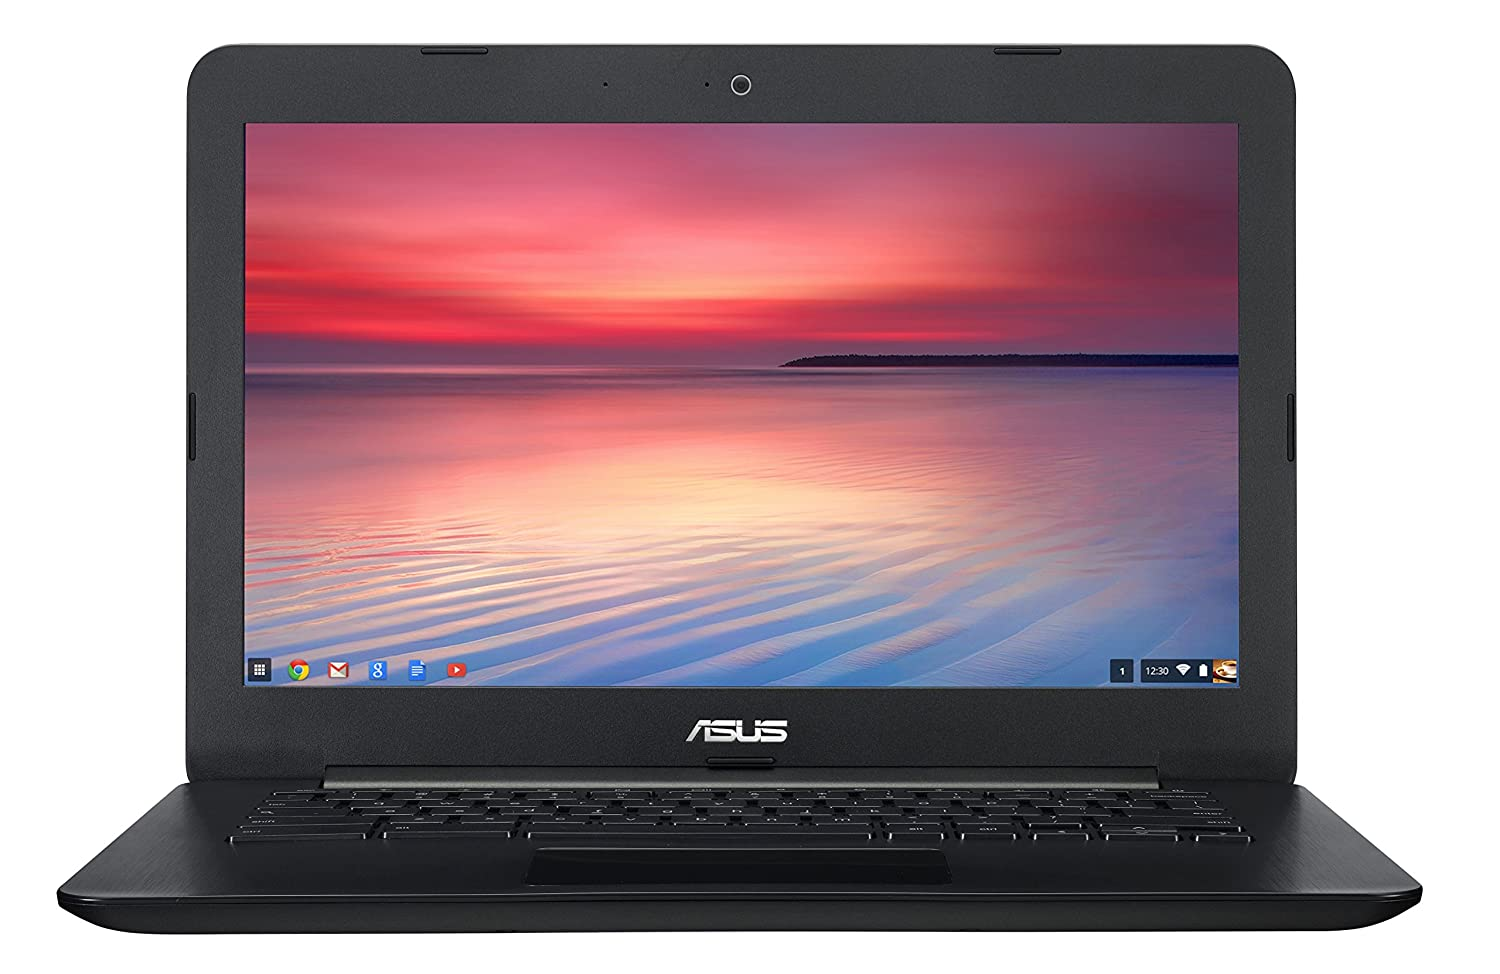 ASUS Chromebook 13.3-Inch HD with Gigabit WiFi, 16GB Storage & 4GB RAM (Black)